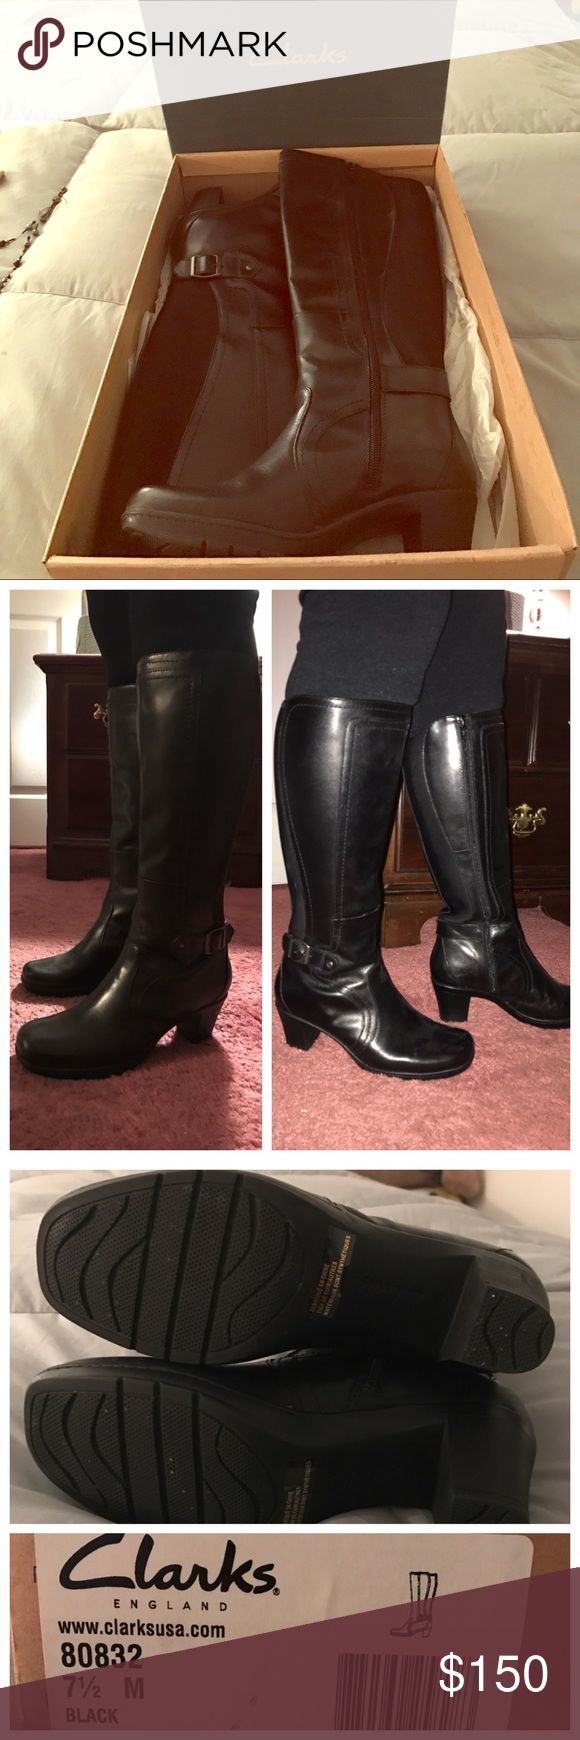 """‼️BNIB CLARKS BLACK LEATHER BOOTS‼️ OMG 😲😲How beautiful are these! Brand new in box, never worn, these need a new home! Clarks is known for amazing quality leather, these do not disappoint! Super stylish but still comfortable with 2 1/2"""" heel. Shaft height is 13 1/2"""" from base of the sole. Regular calf width, not wide nor slim. Silver hardware. Please ask any/all questions before purchasing, happy to help! These are my mom's boots, she does not NEED to sell them, so please no lowballs.If…"""